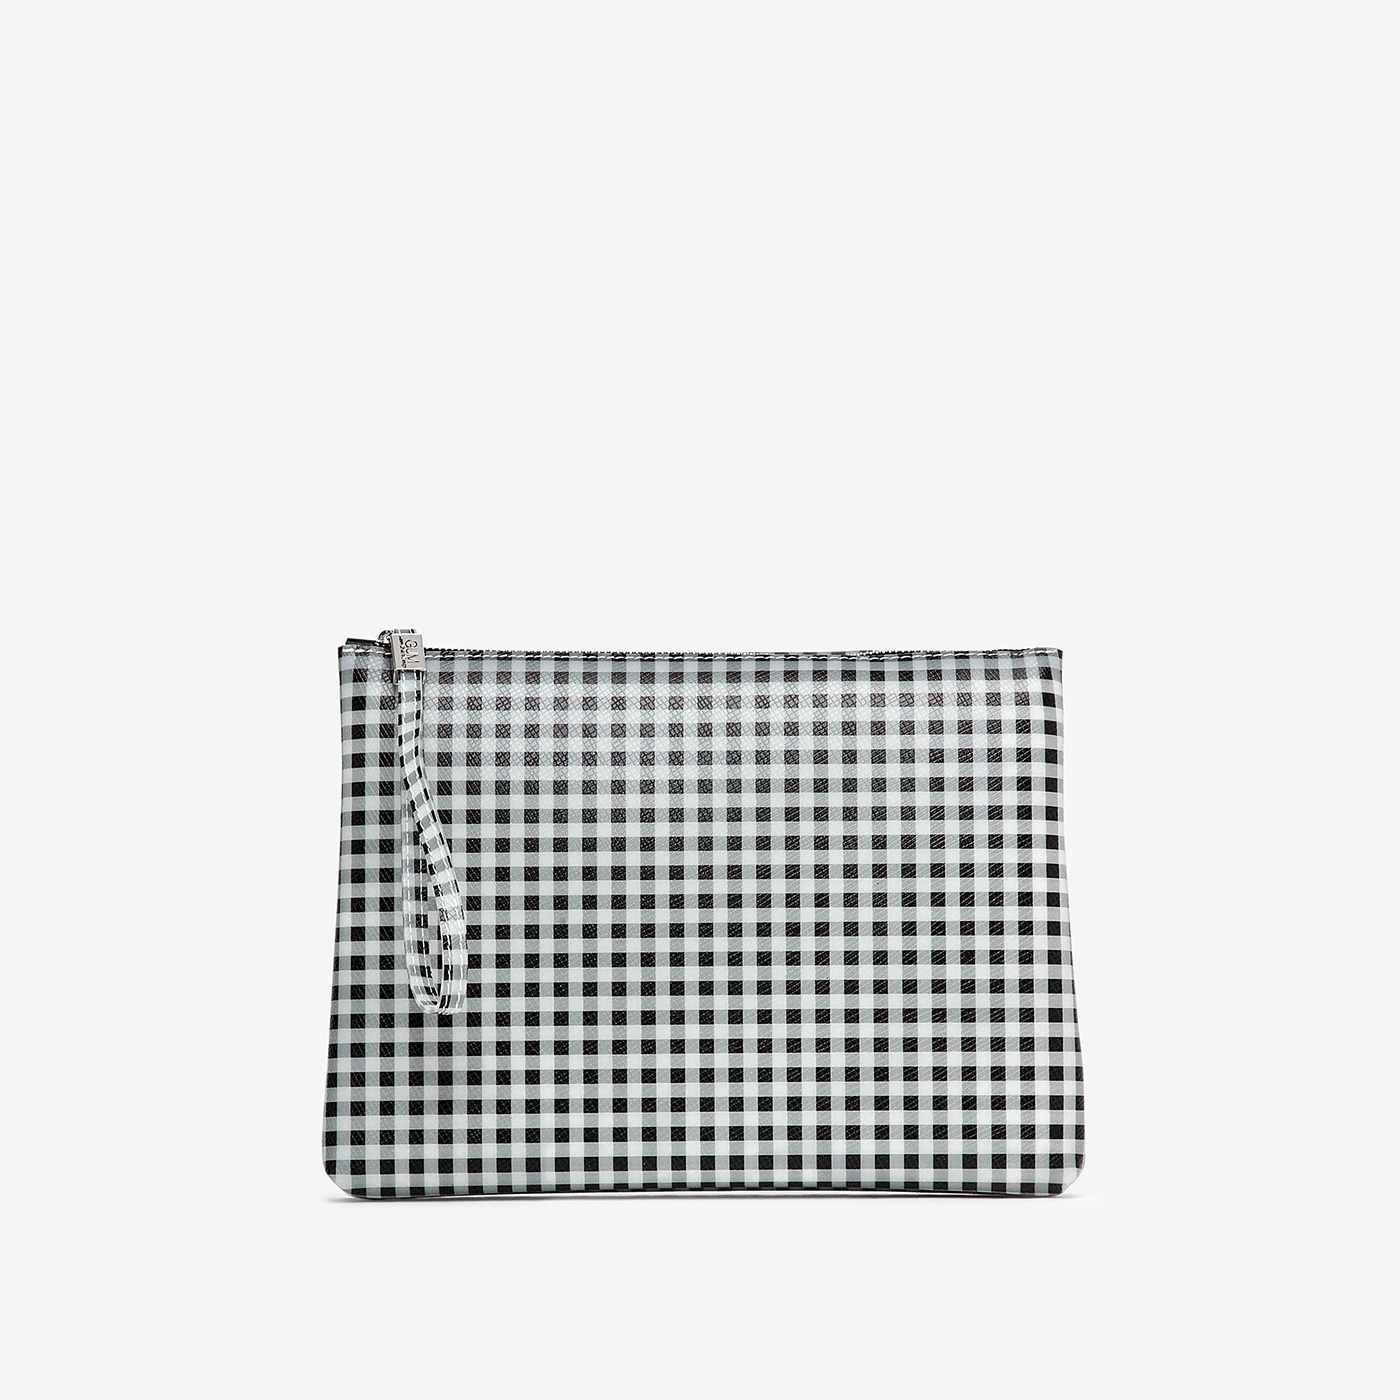 GUM: NUMBERS CLUTCH BAG MEDIUM-LARGE